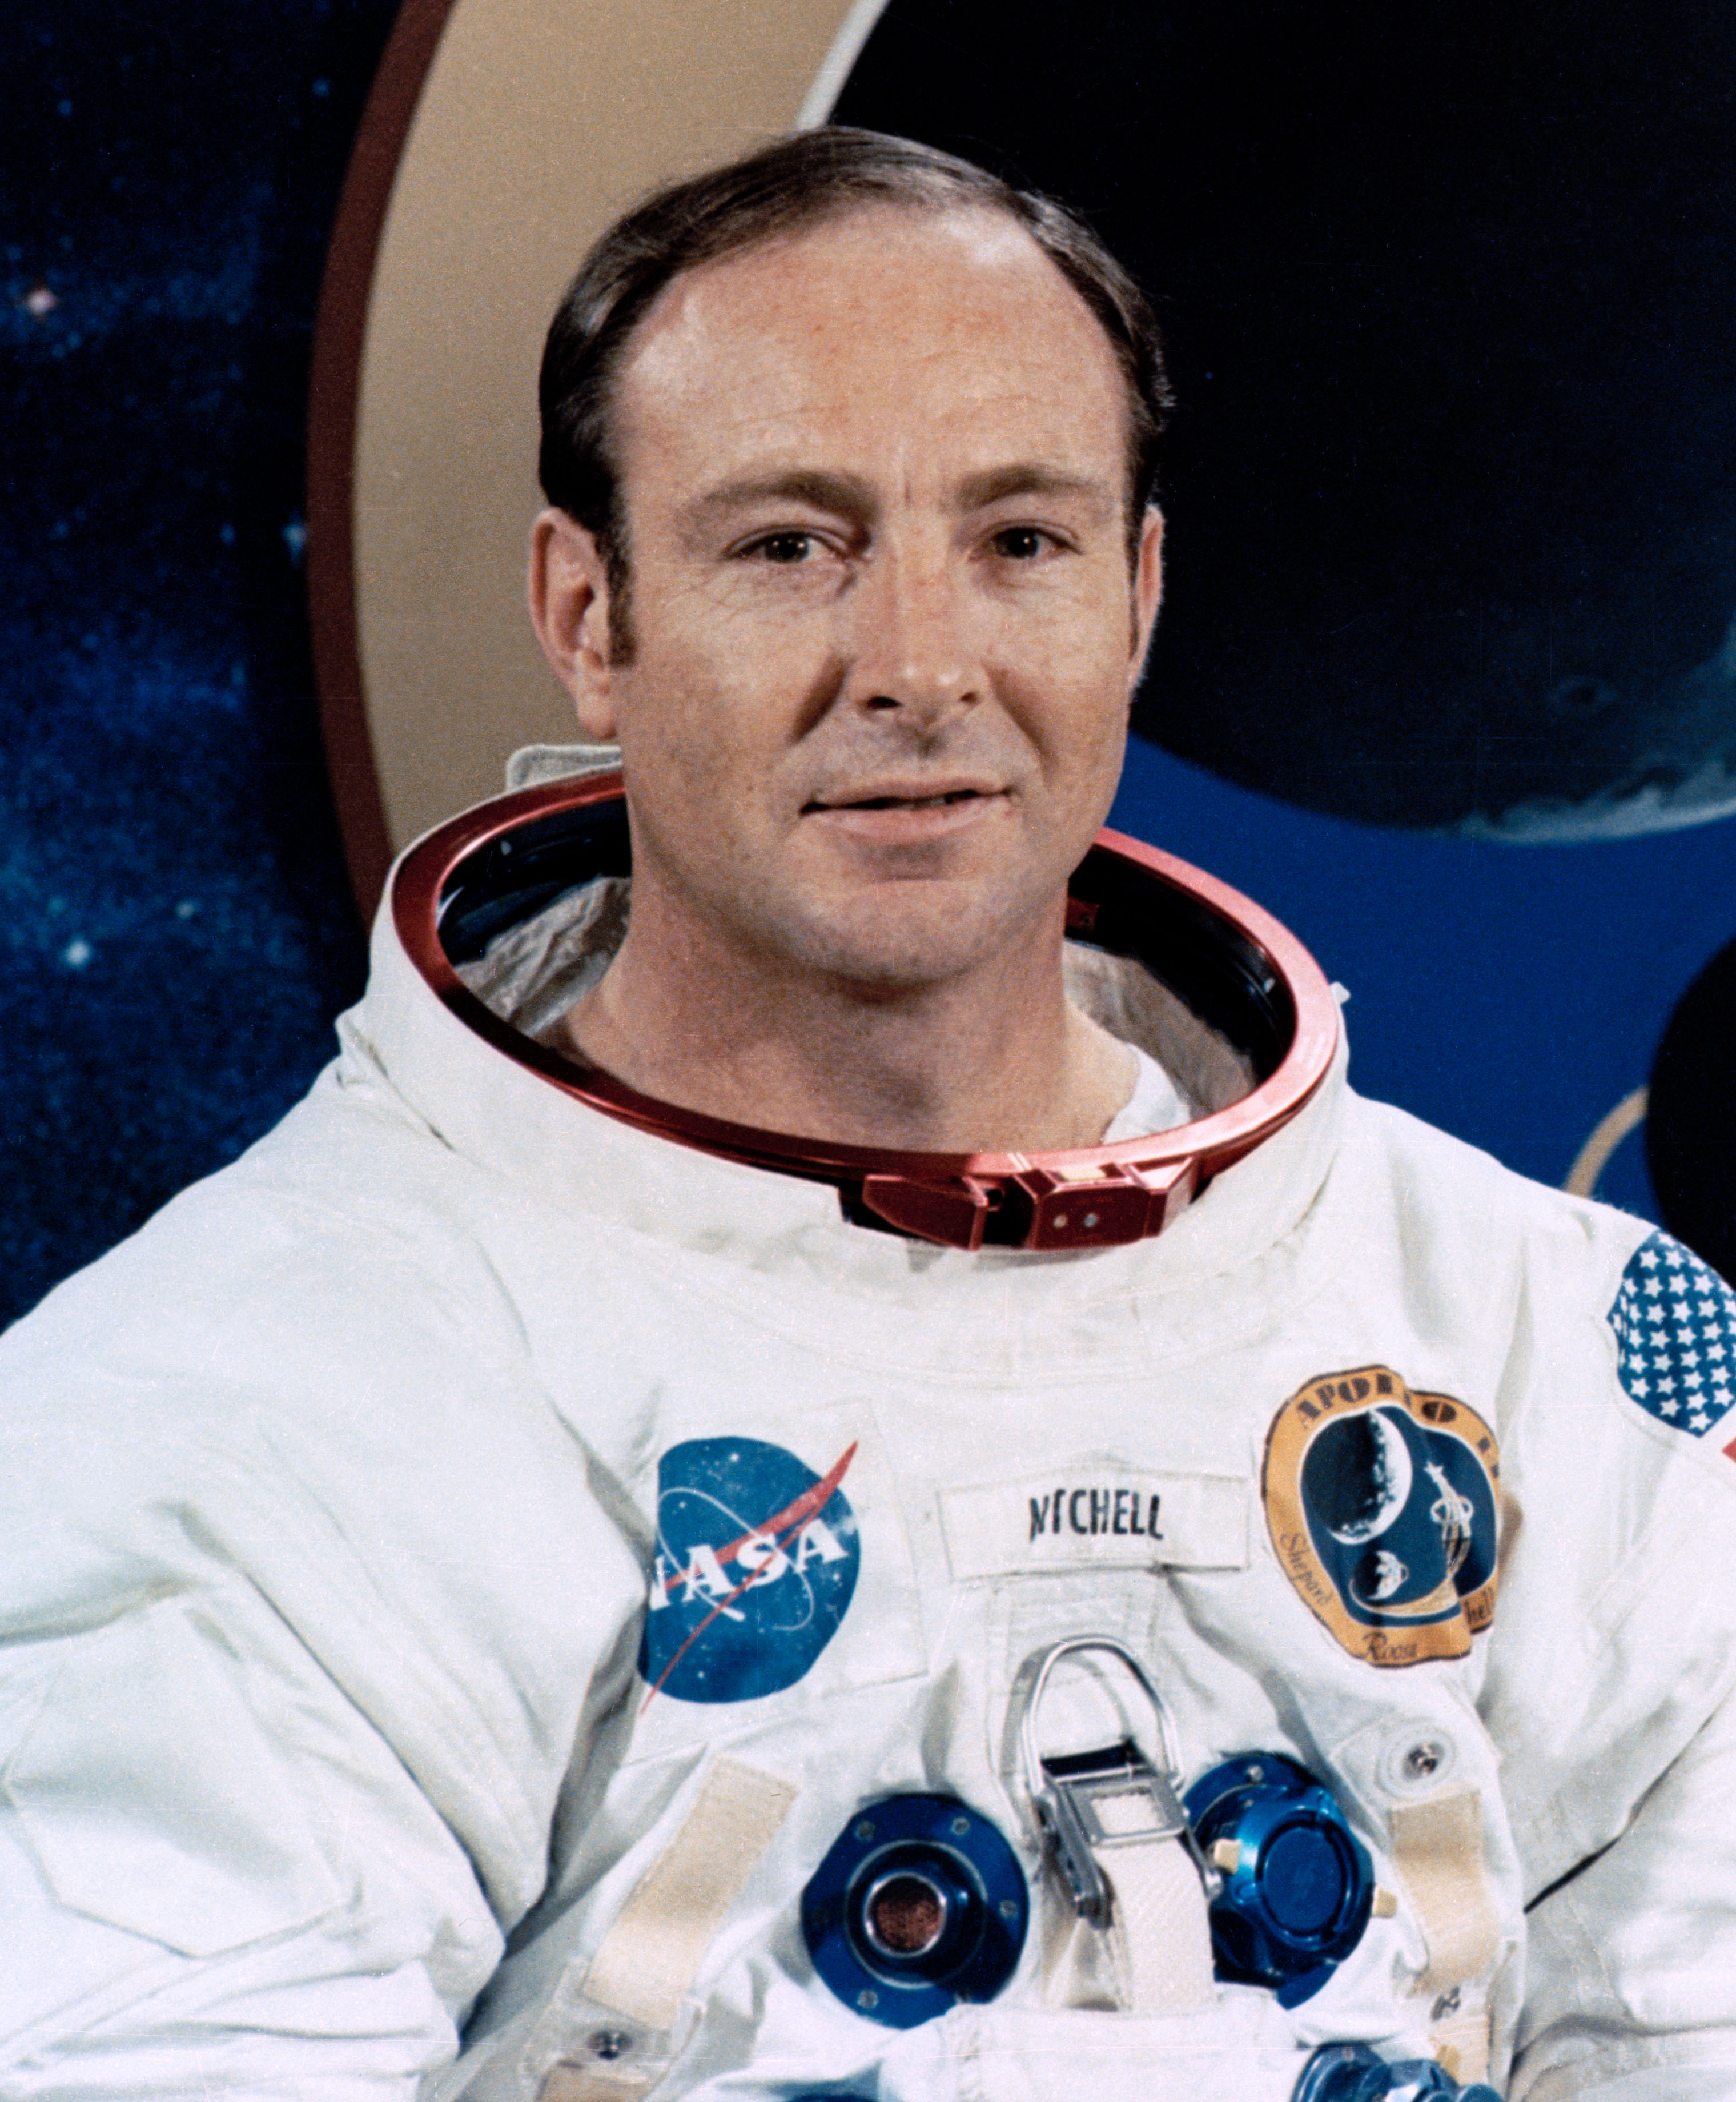 English: Astronaut Edgar Mitchell